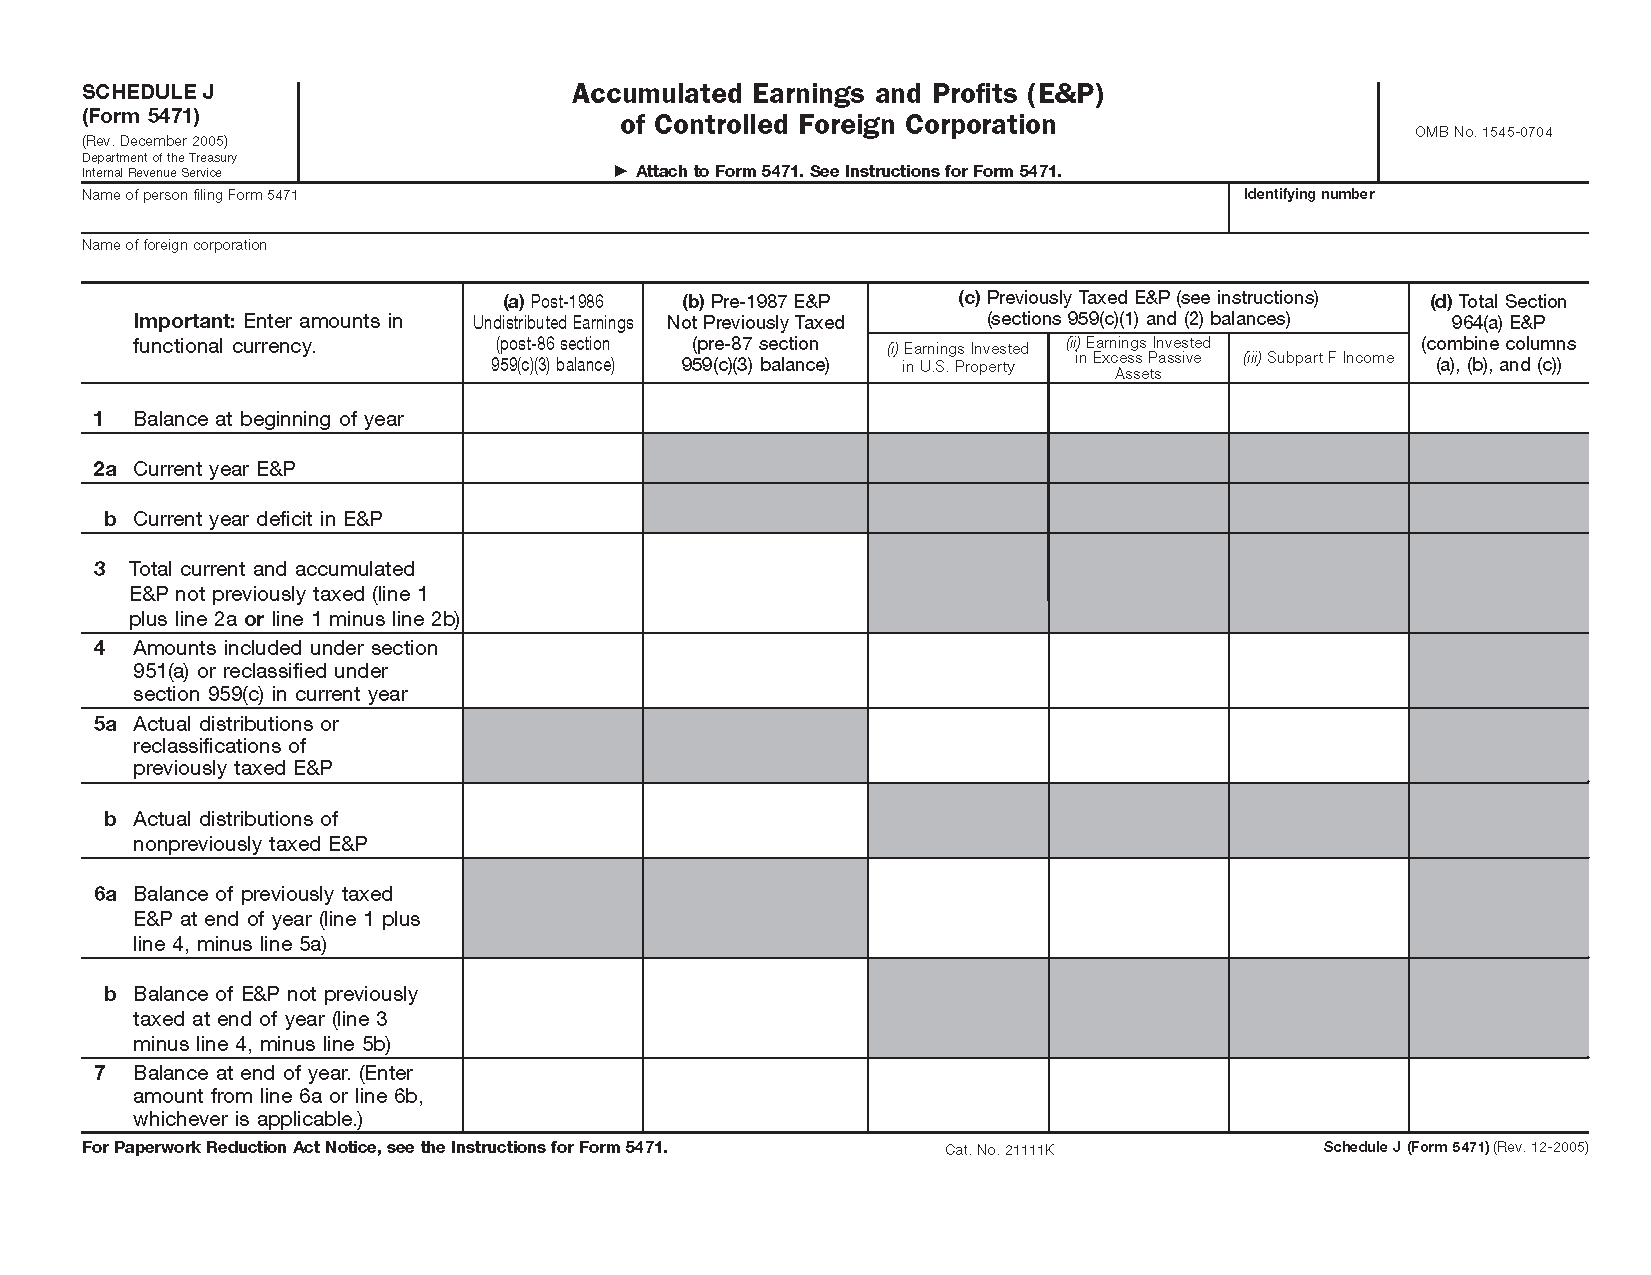 Form 5471 schedule j accumulated earnings and profits ep of view all 2011 irs tax forms falaconquin